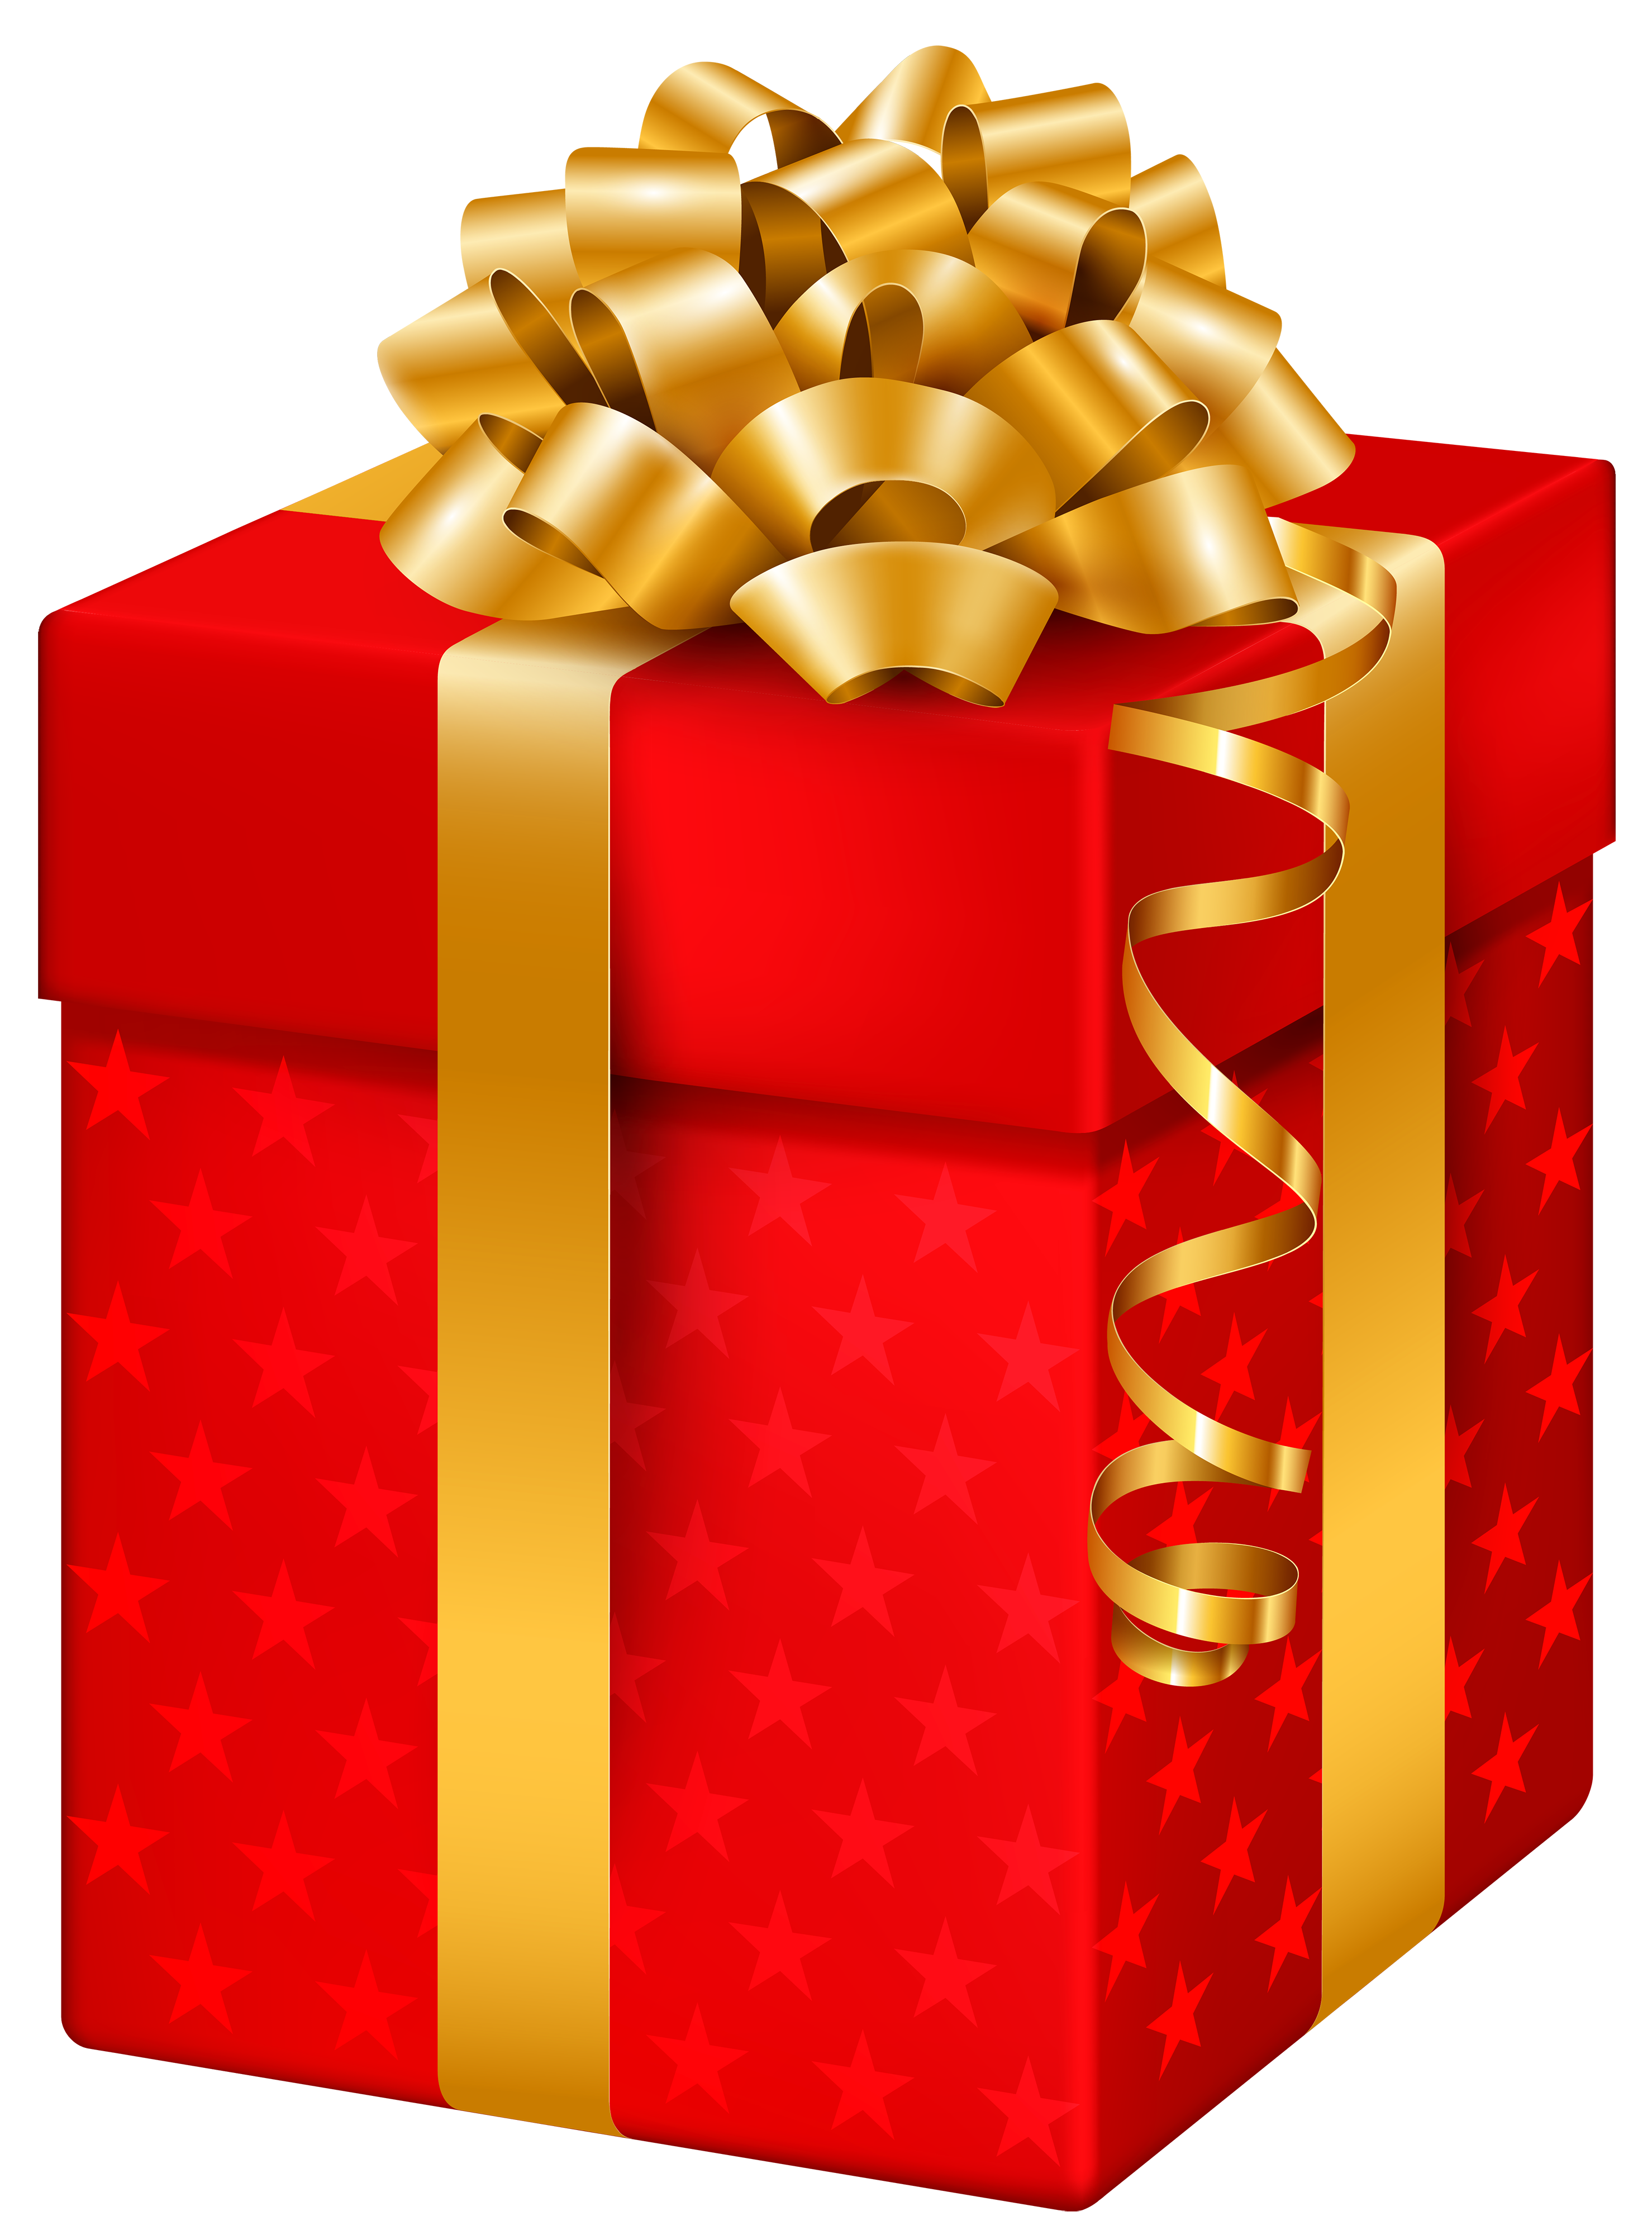 Gift boxes png. Red box with stars